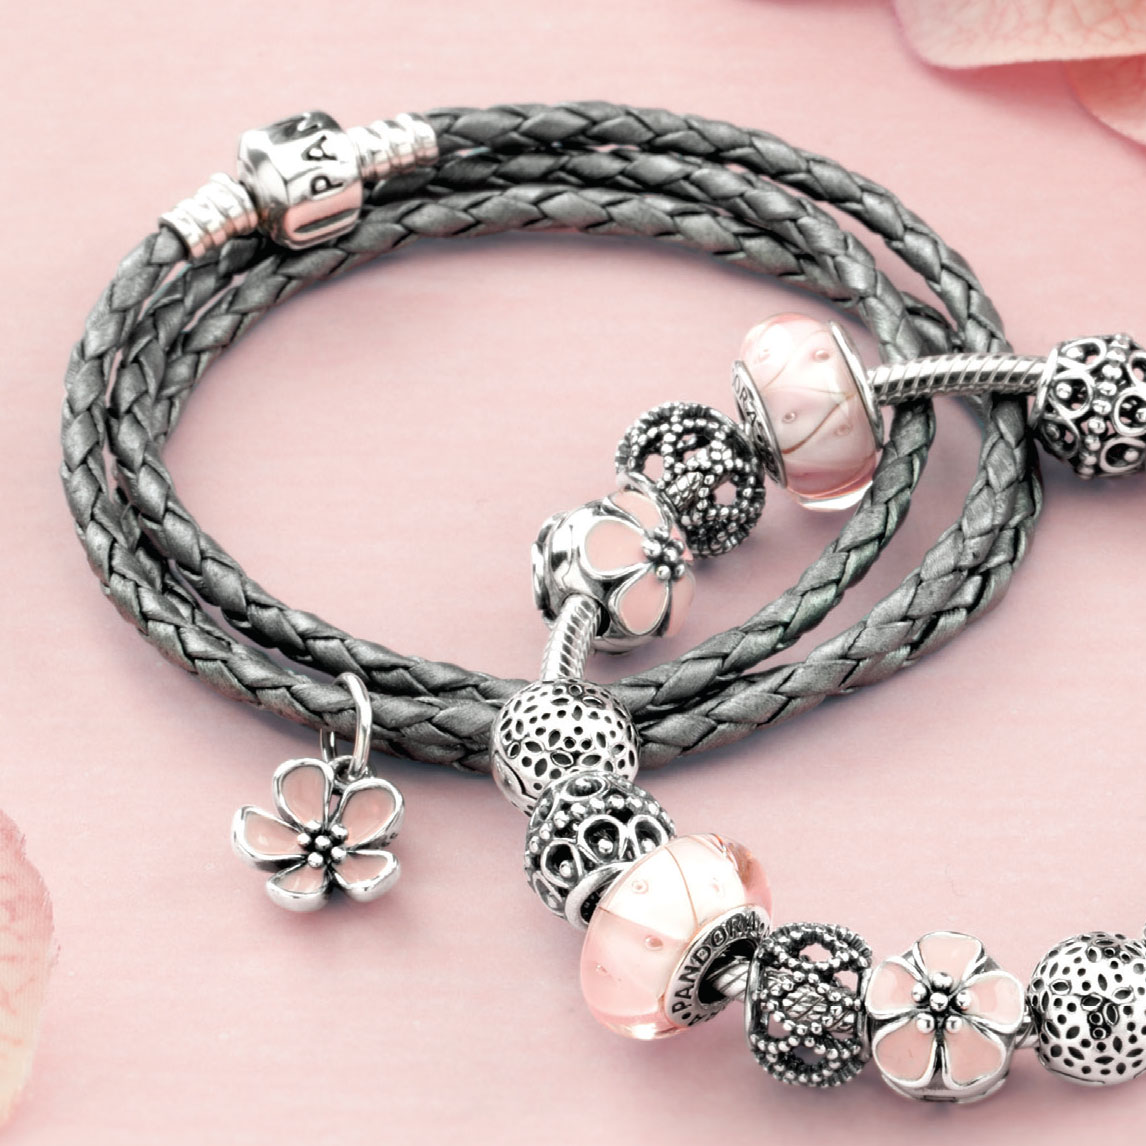 Pandora cherry blossom with pink enamel stories pendant 342940 pandora cherry blossom with pink enamel stories pendant 342940 pancharmbracelets aloadofball Images